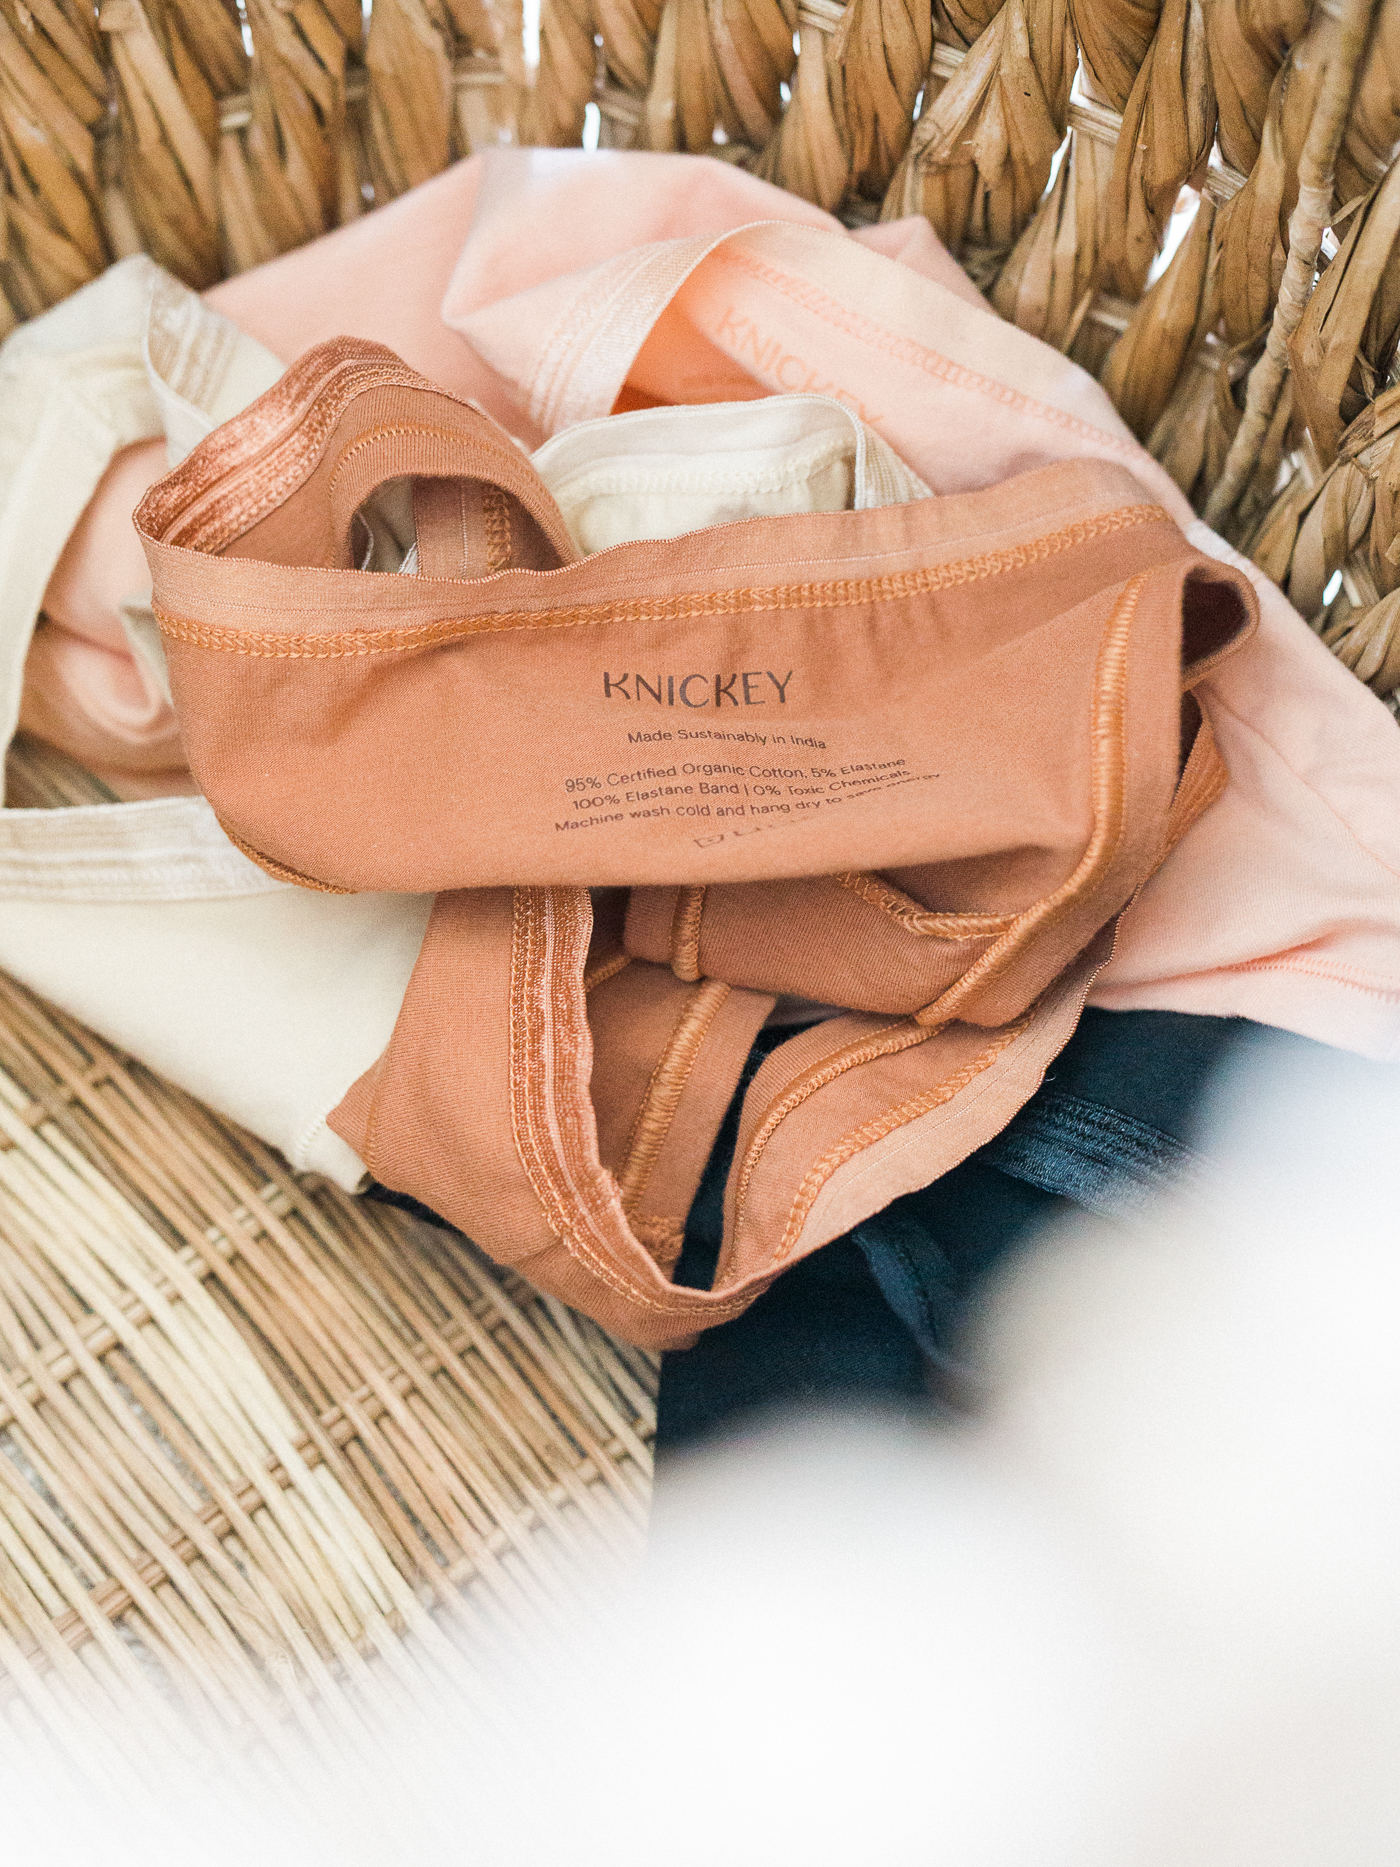 Voyage + Heart - Product Photography for Sustainable Brands - Mail In Product Photography for Conscious Brands - Knickey - Organic Cotton Underwear